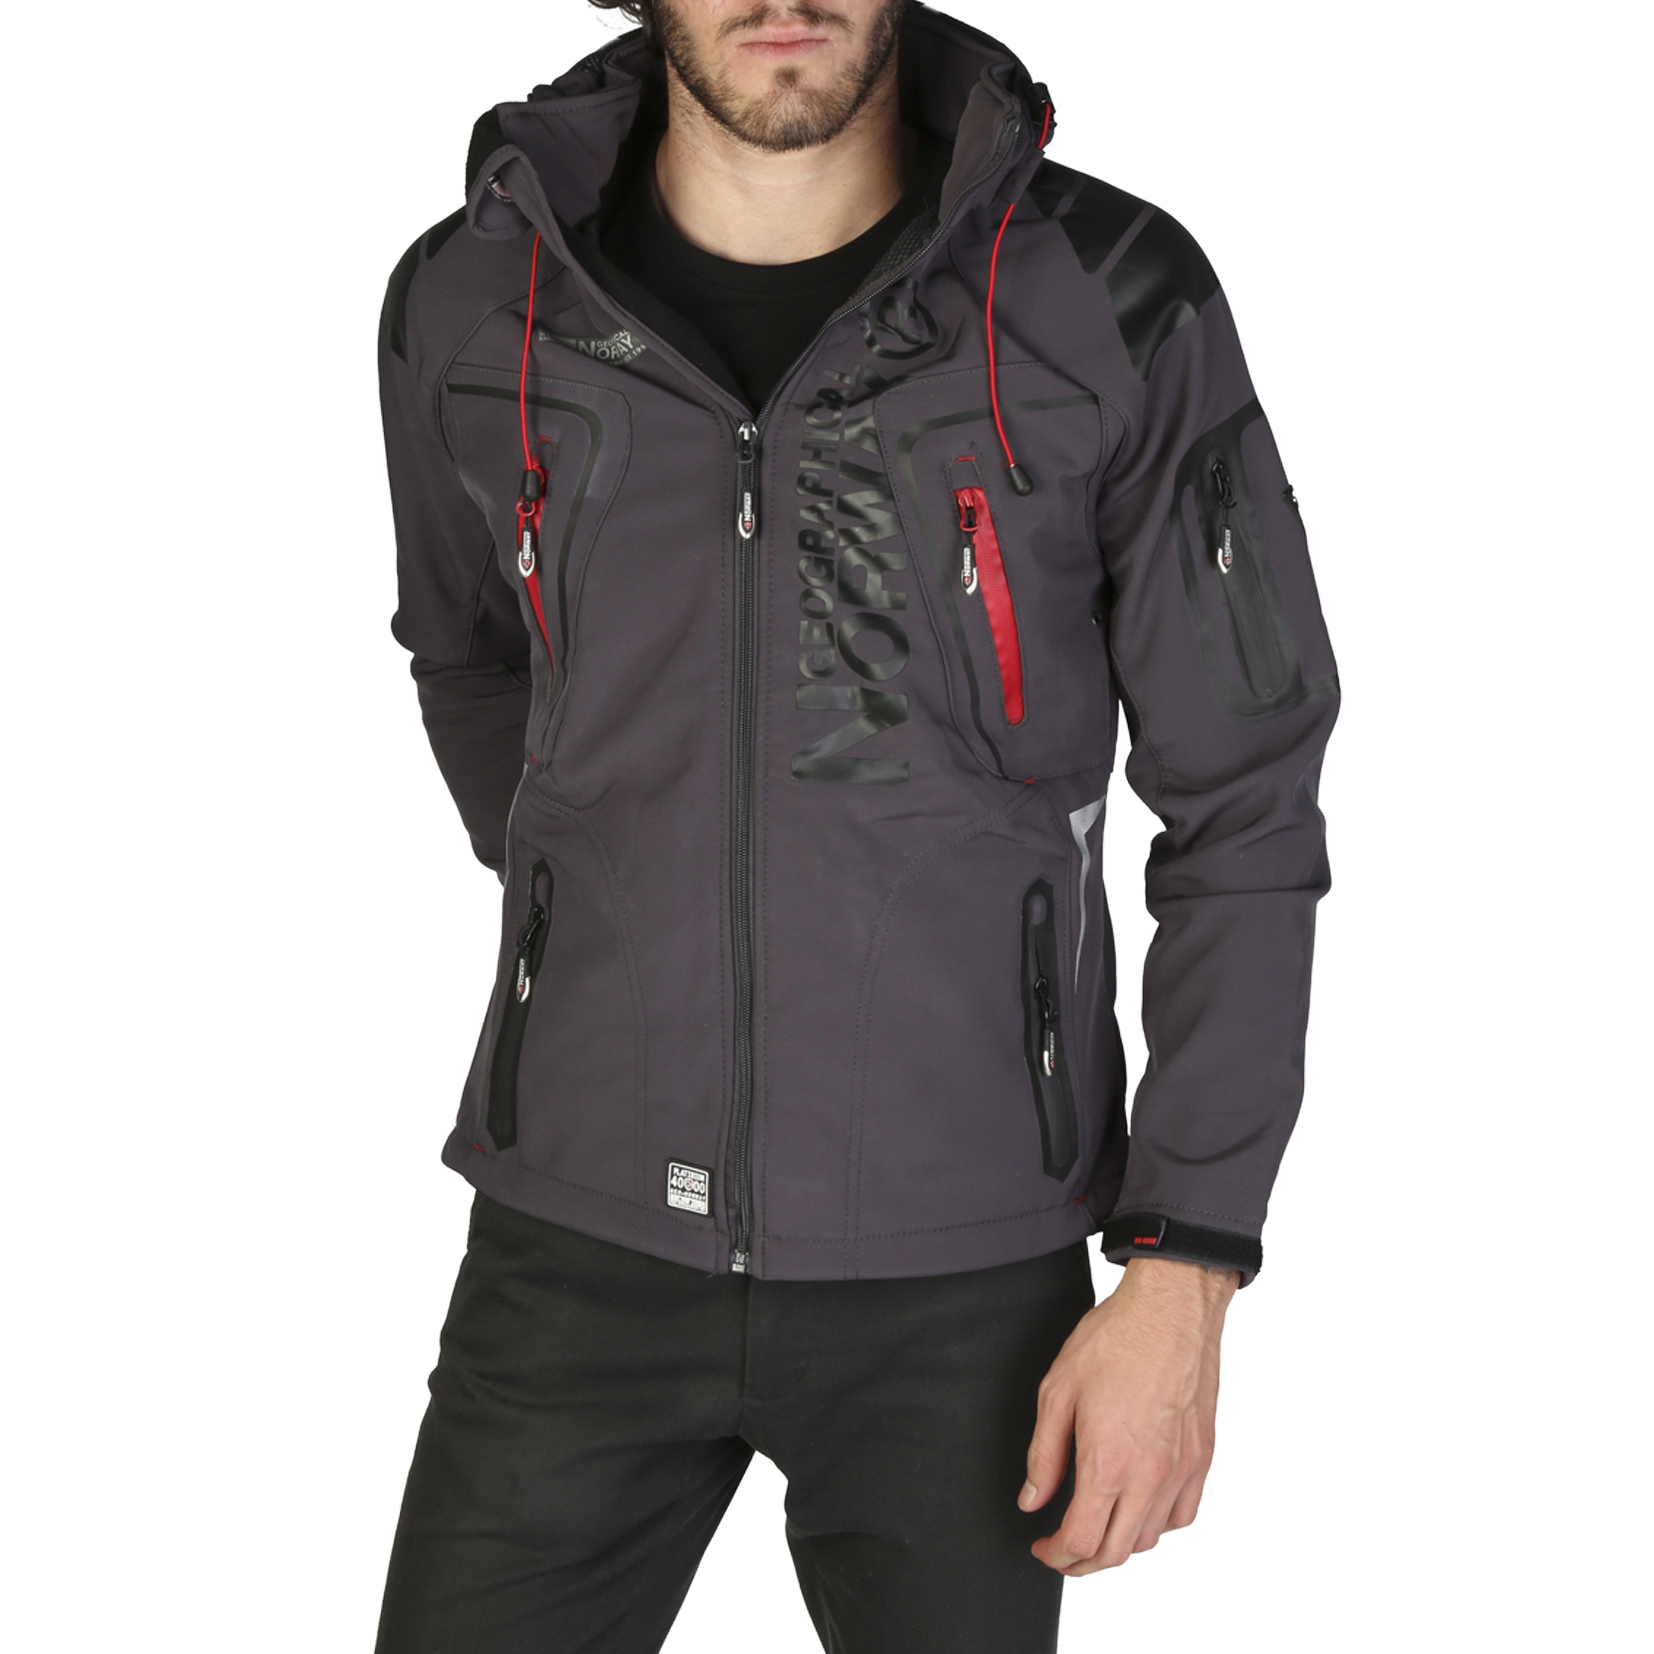 Geographical Norway Techno man